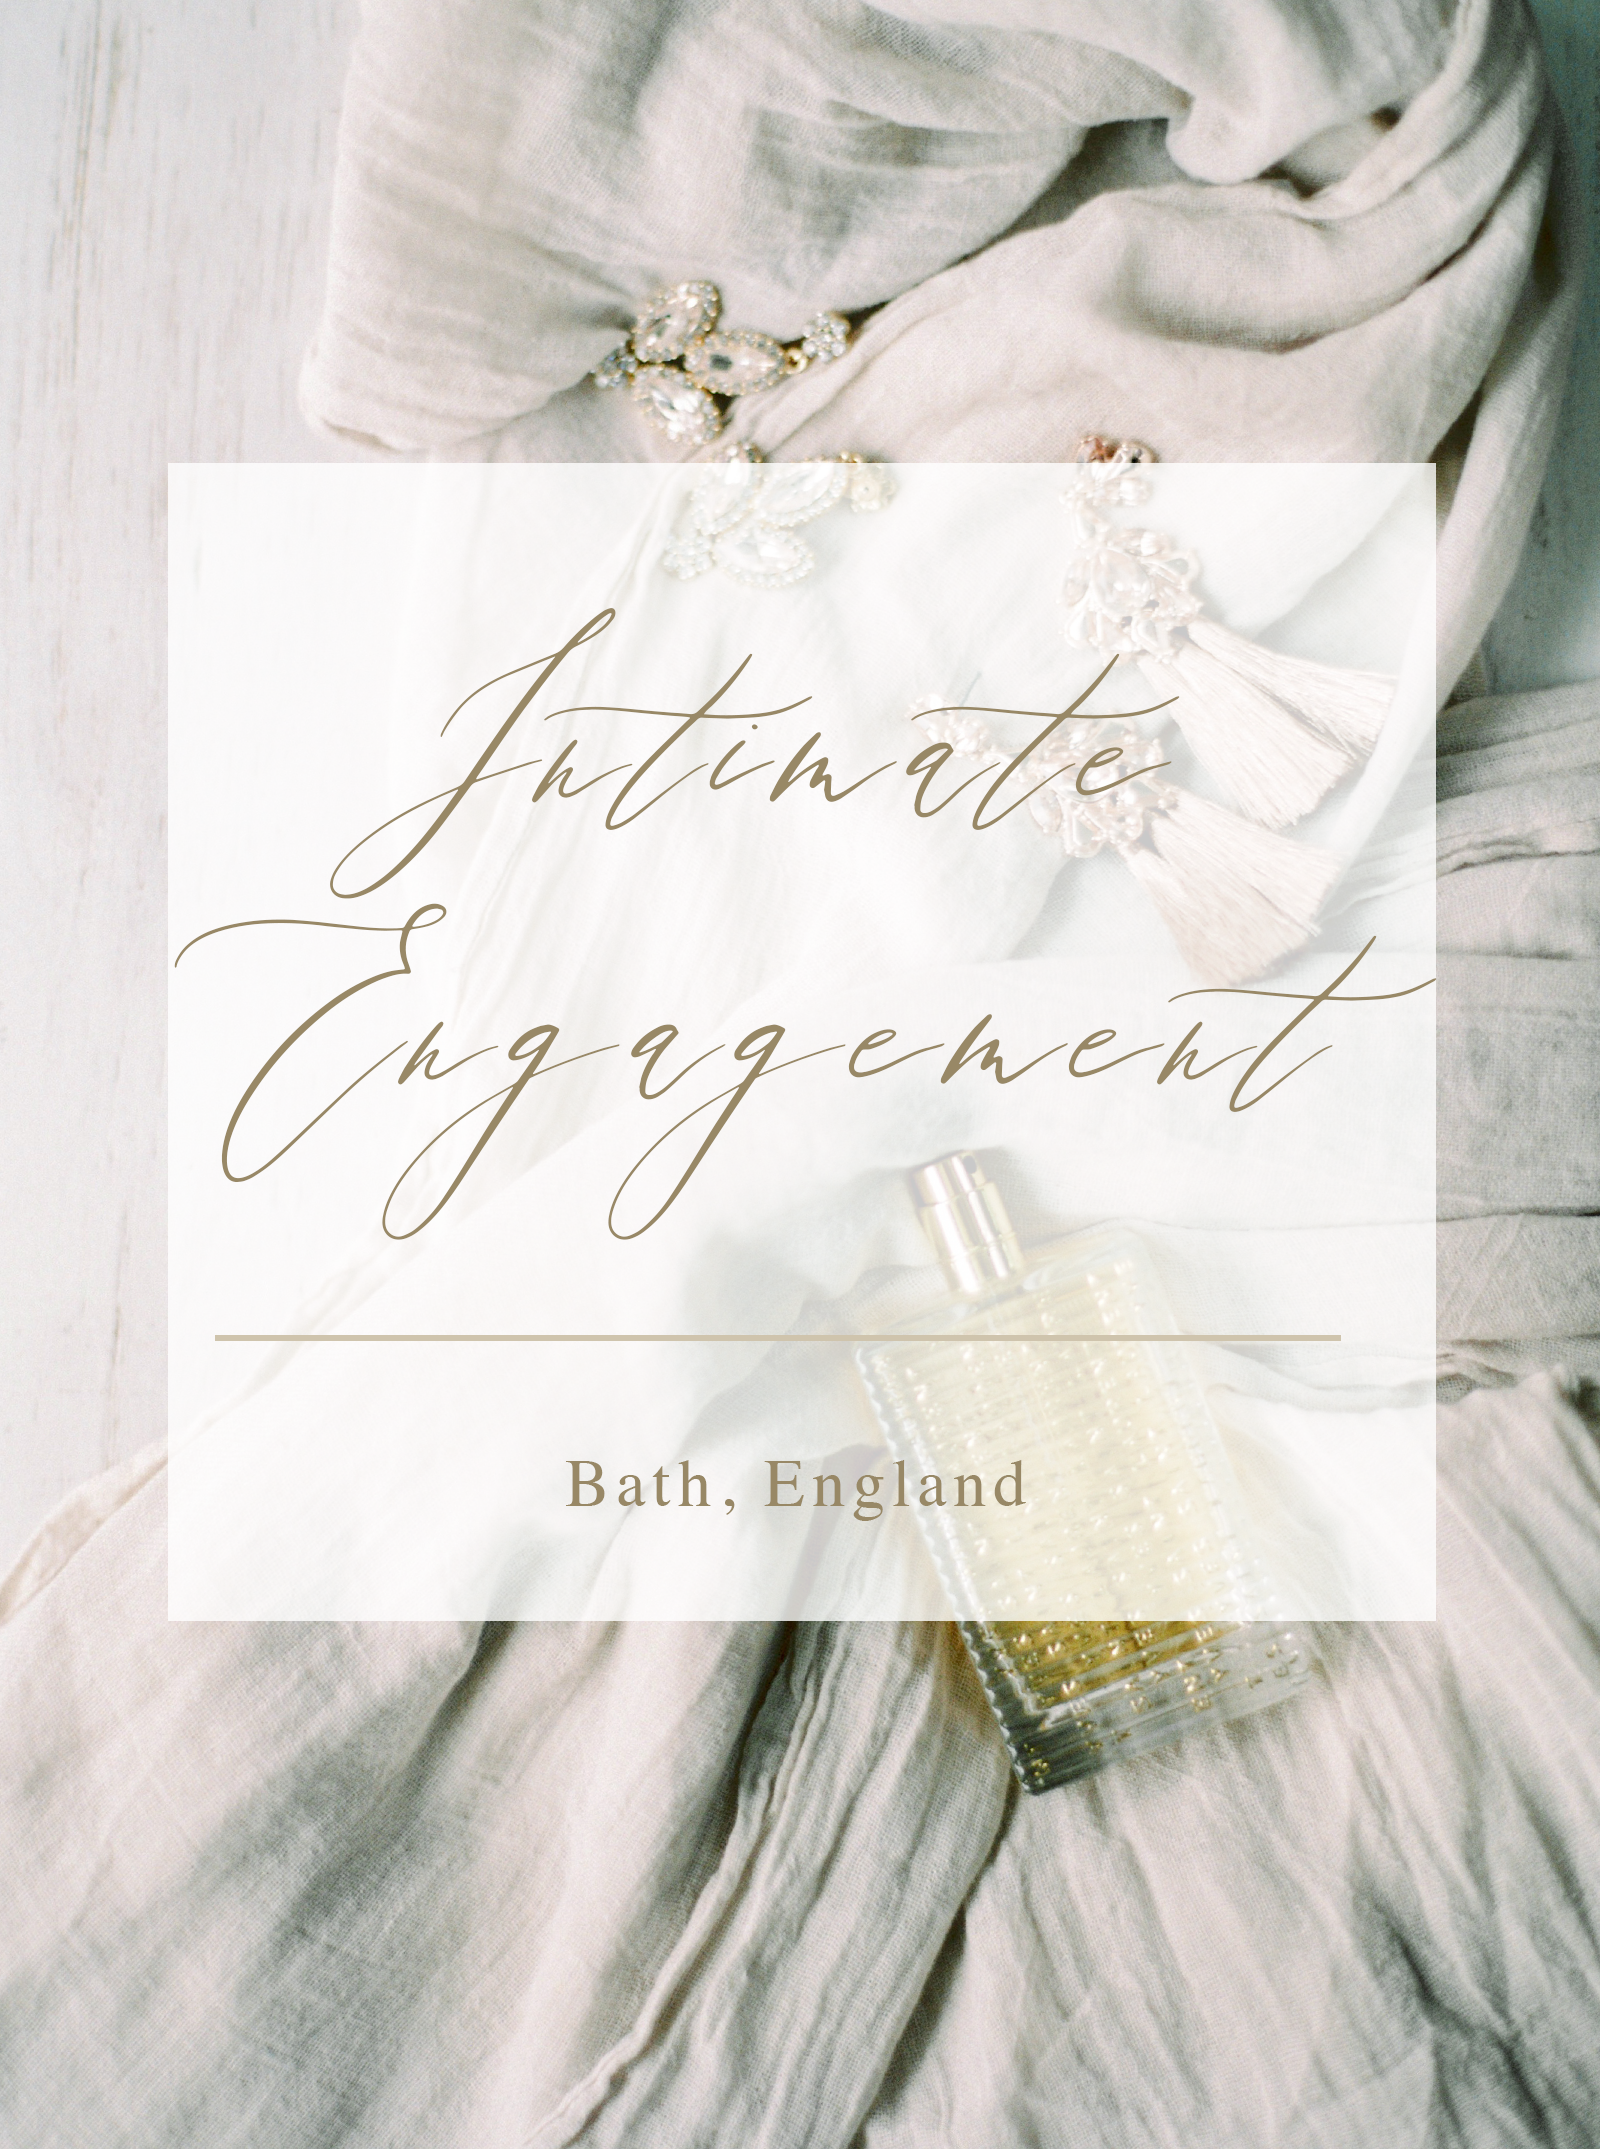 Luxury+Wedding+Planner+UK+_+Our+Chic+&+Romantic+Engagement+Shoot+in+Bath+_+Katie+Julia+Photography+-+41.png